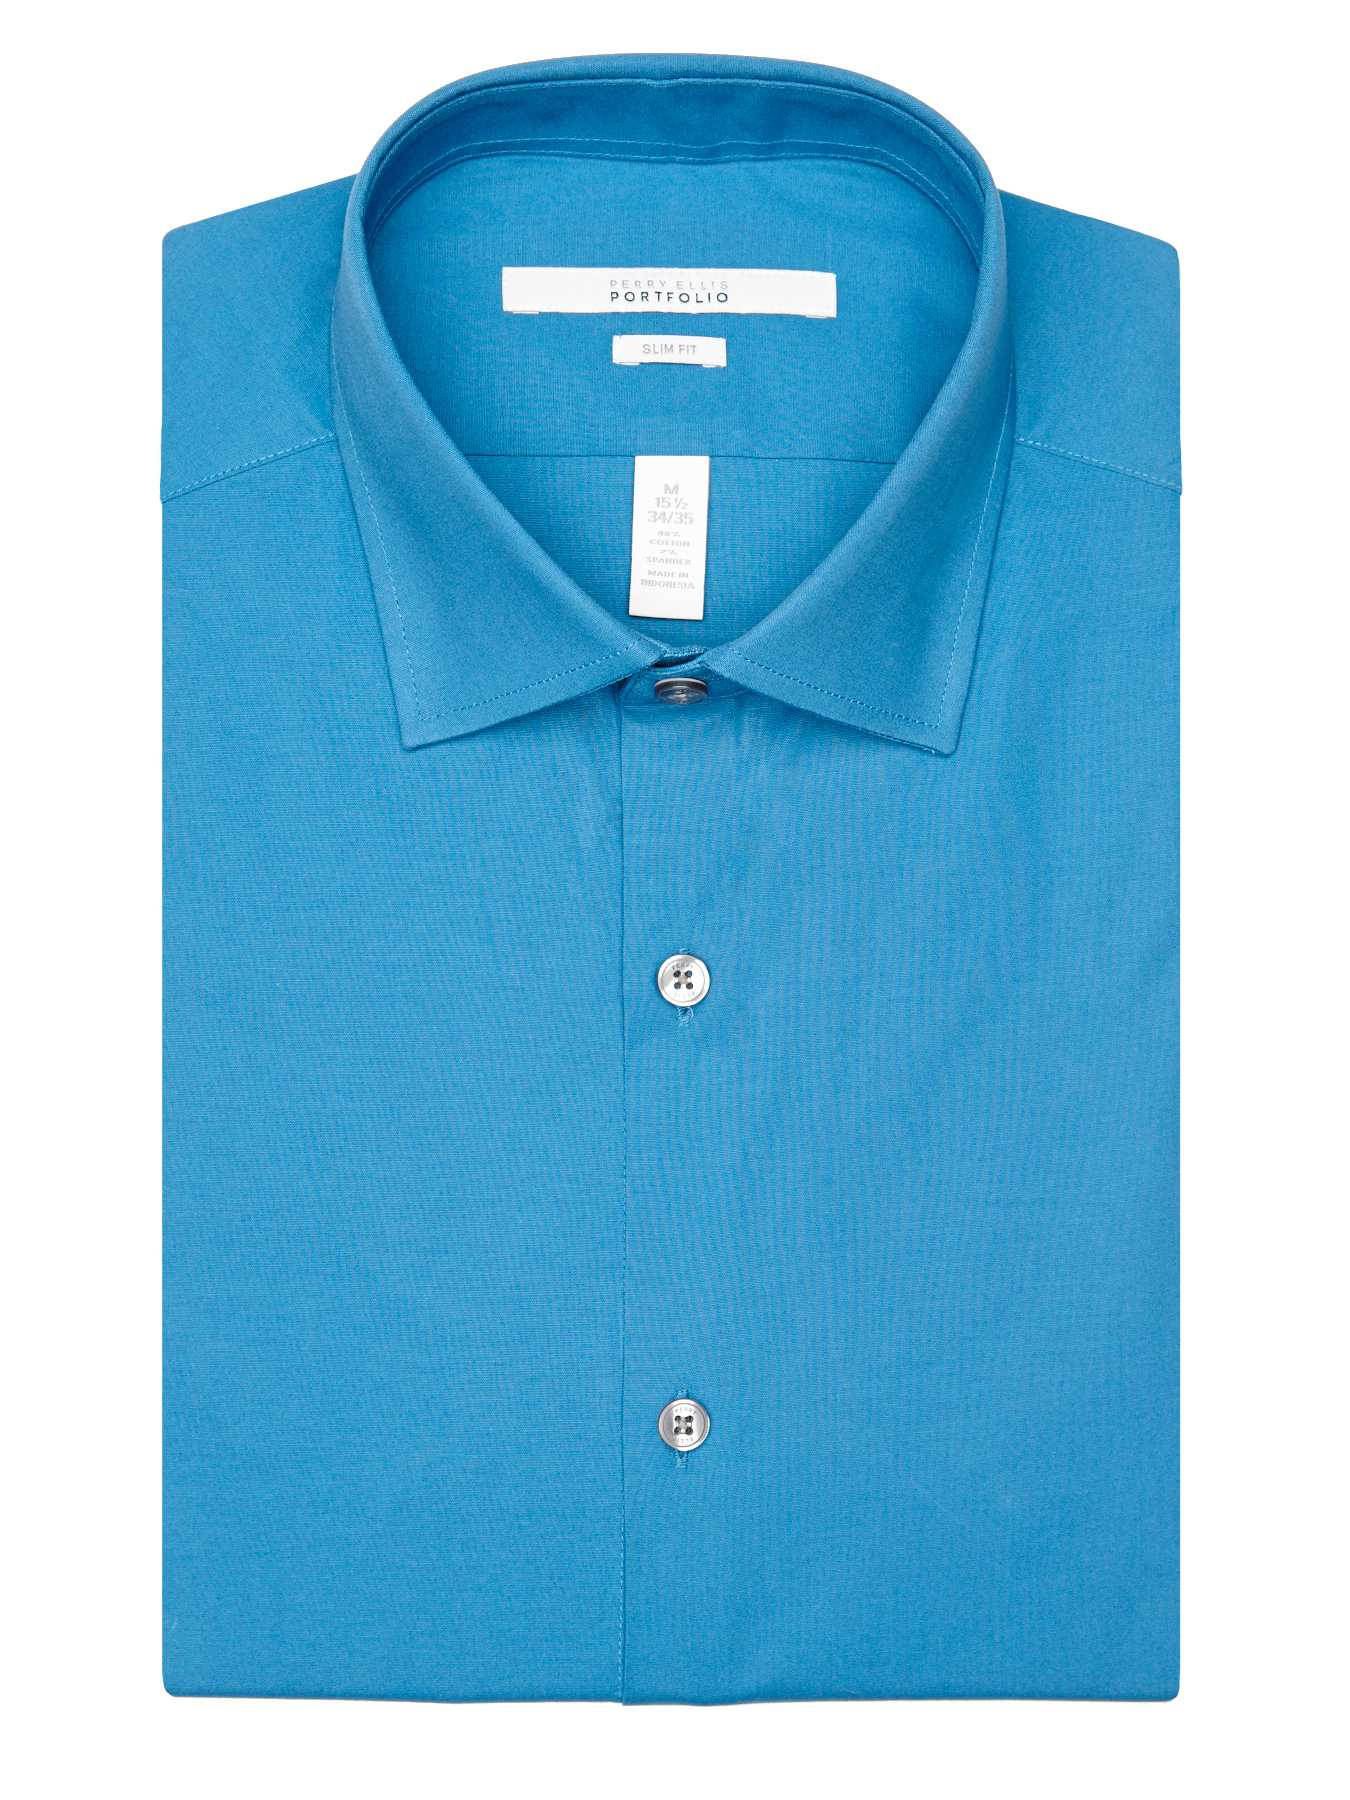 Perry Ellis Slim Fit Solid Poplin Dress Shirt